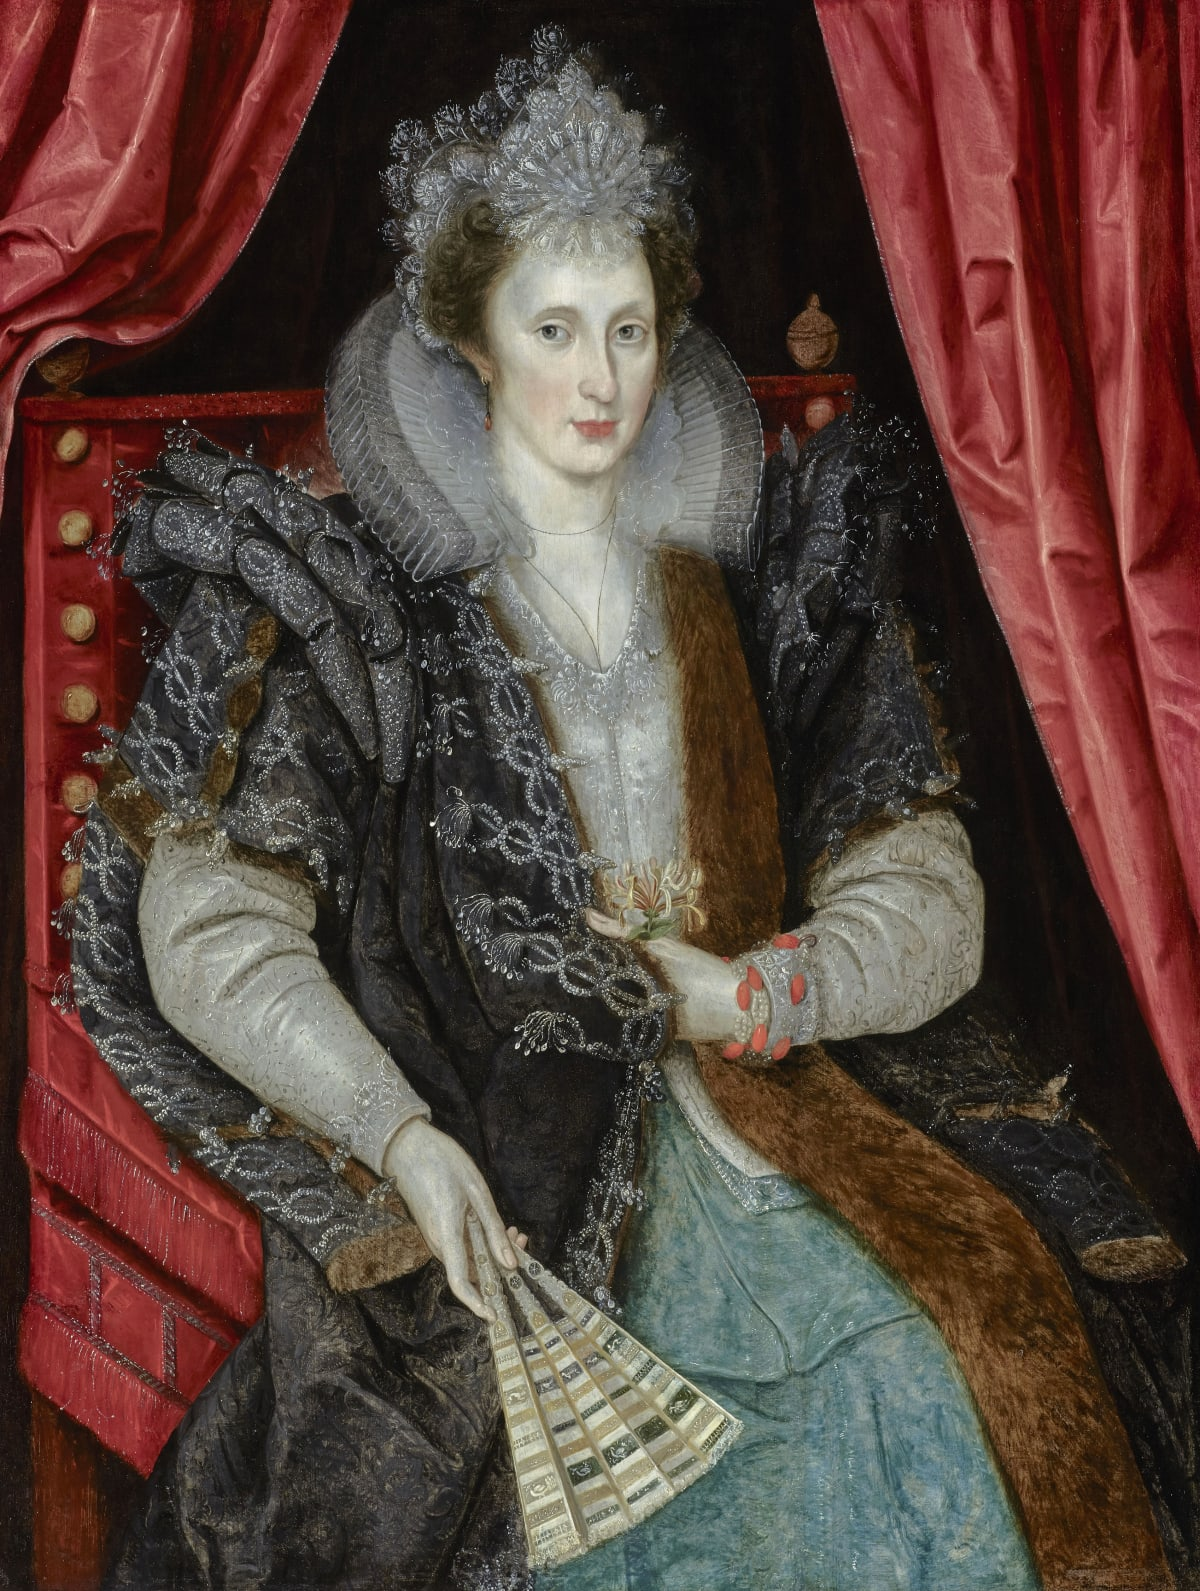 Circle of Marcus Gheeraerts the Younger (1561 – 1635) Lady Mary Neville, née Sackville (1584 – c.1613), c.1610 Oil on panel 44 ½ x 33 ¾ in. (113.3 x 86 cm.)